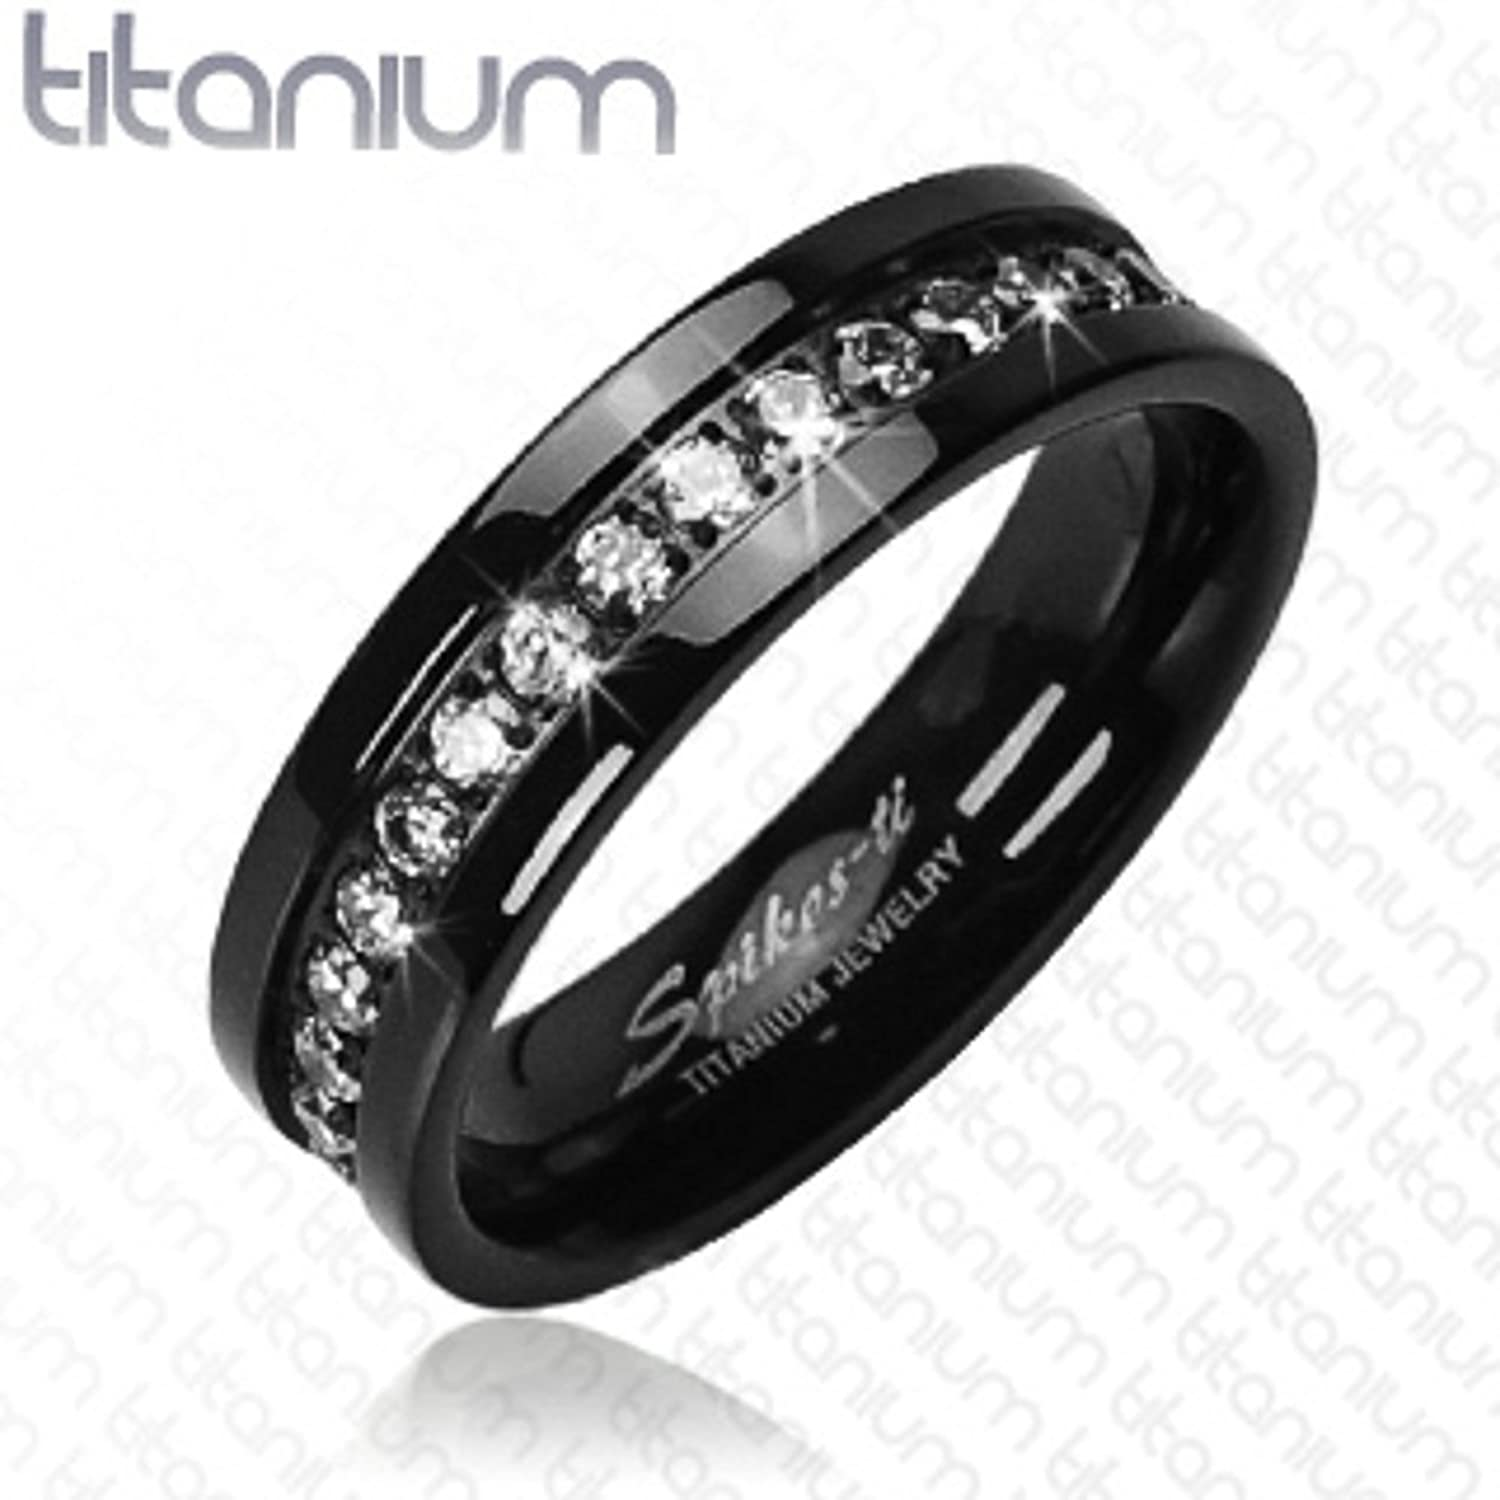 amazoncom his hers 4pc black stainless steel titanium wedding engagement ring band set size womens 05 mens 06 jewelry - Womens Black Wedding Ring Sets